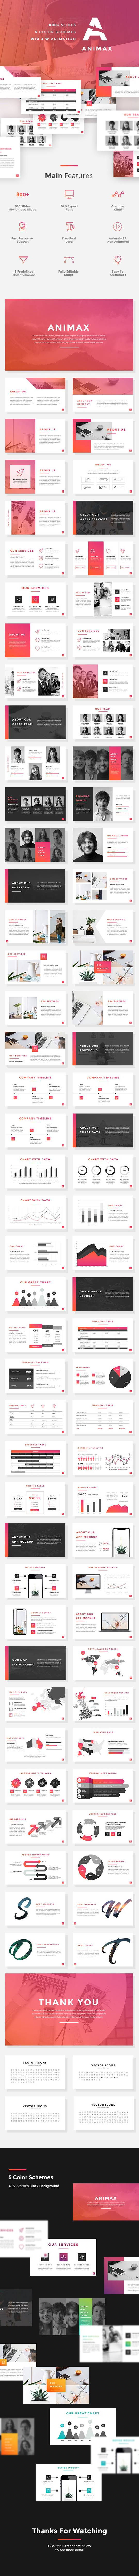 Animax - Finance and Marketing PowerPoint Template - Finance PowerPoint Templates #powerpoint